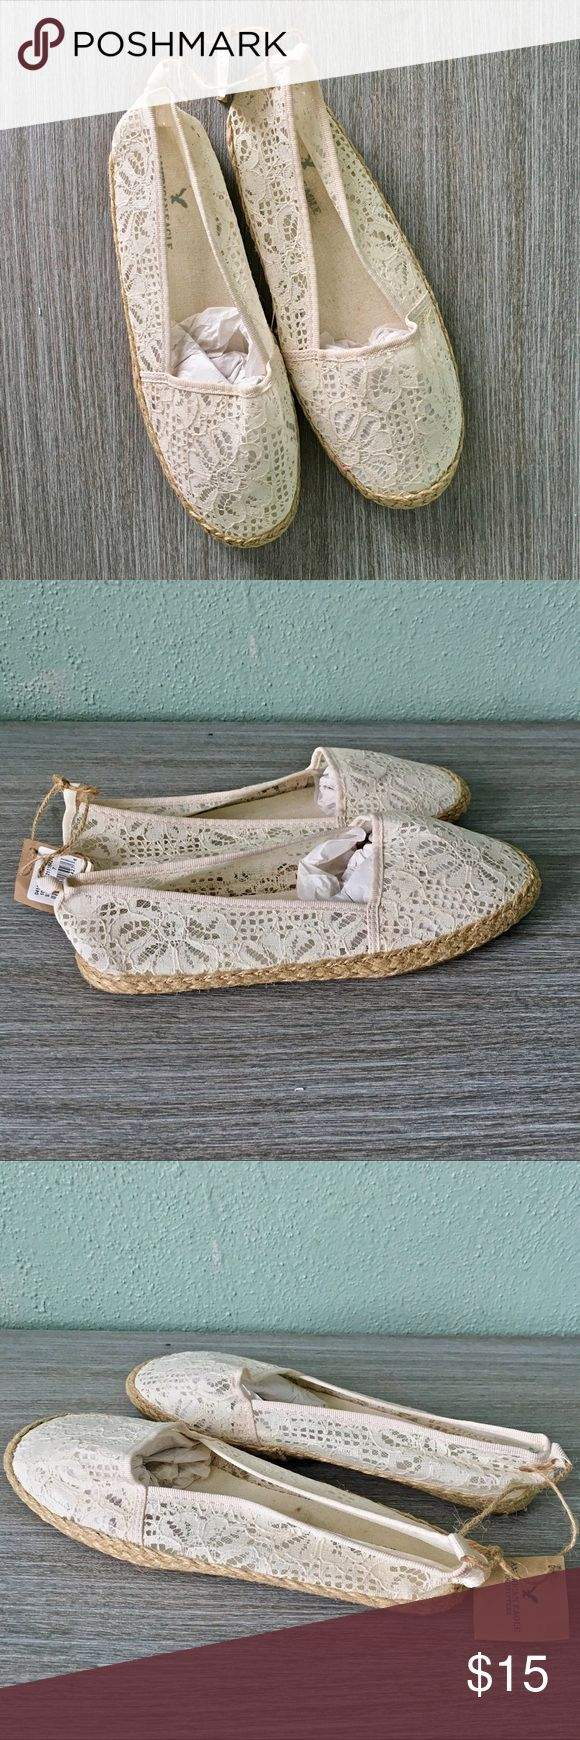 NWT American Eagle White Lace Espadrilles Brand new never worn. American Eagle white lace espadrilles. A perfect summer basic! True to size. American Eagle Outfitters Shoes Espadrilles